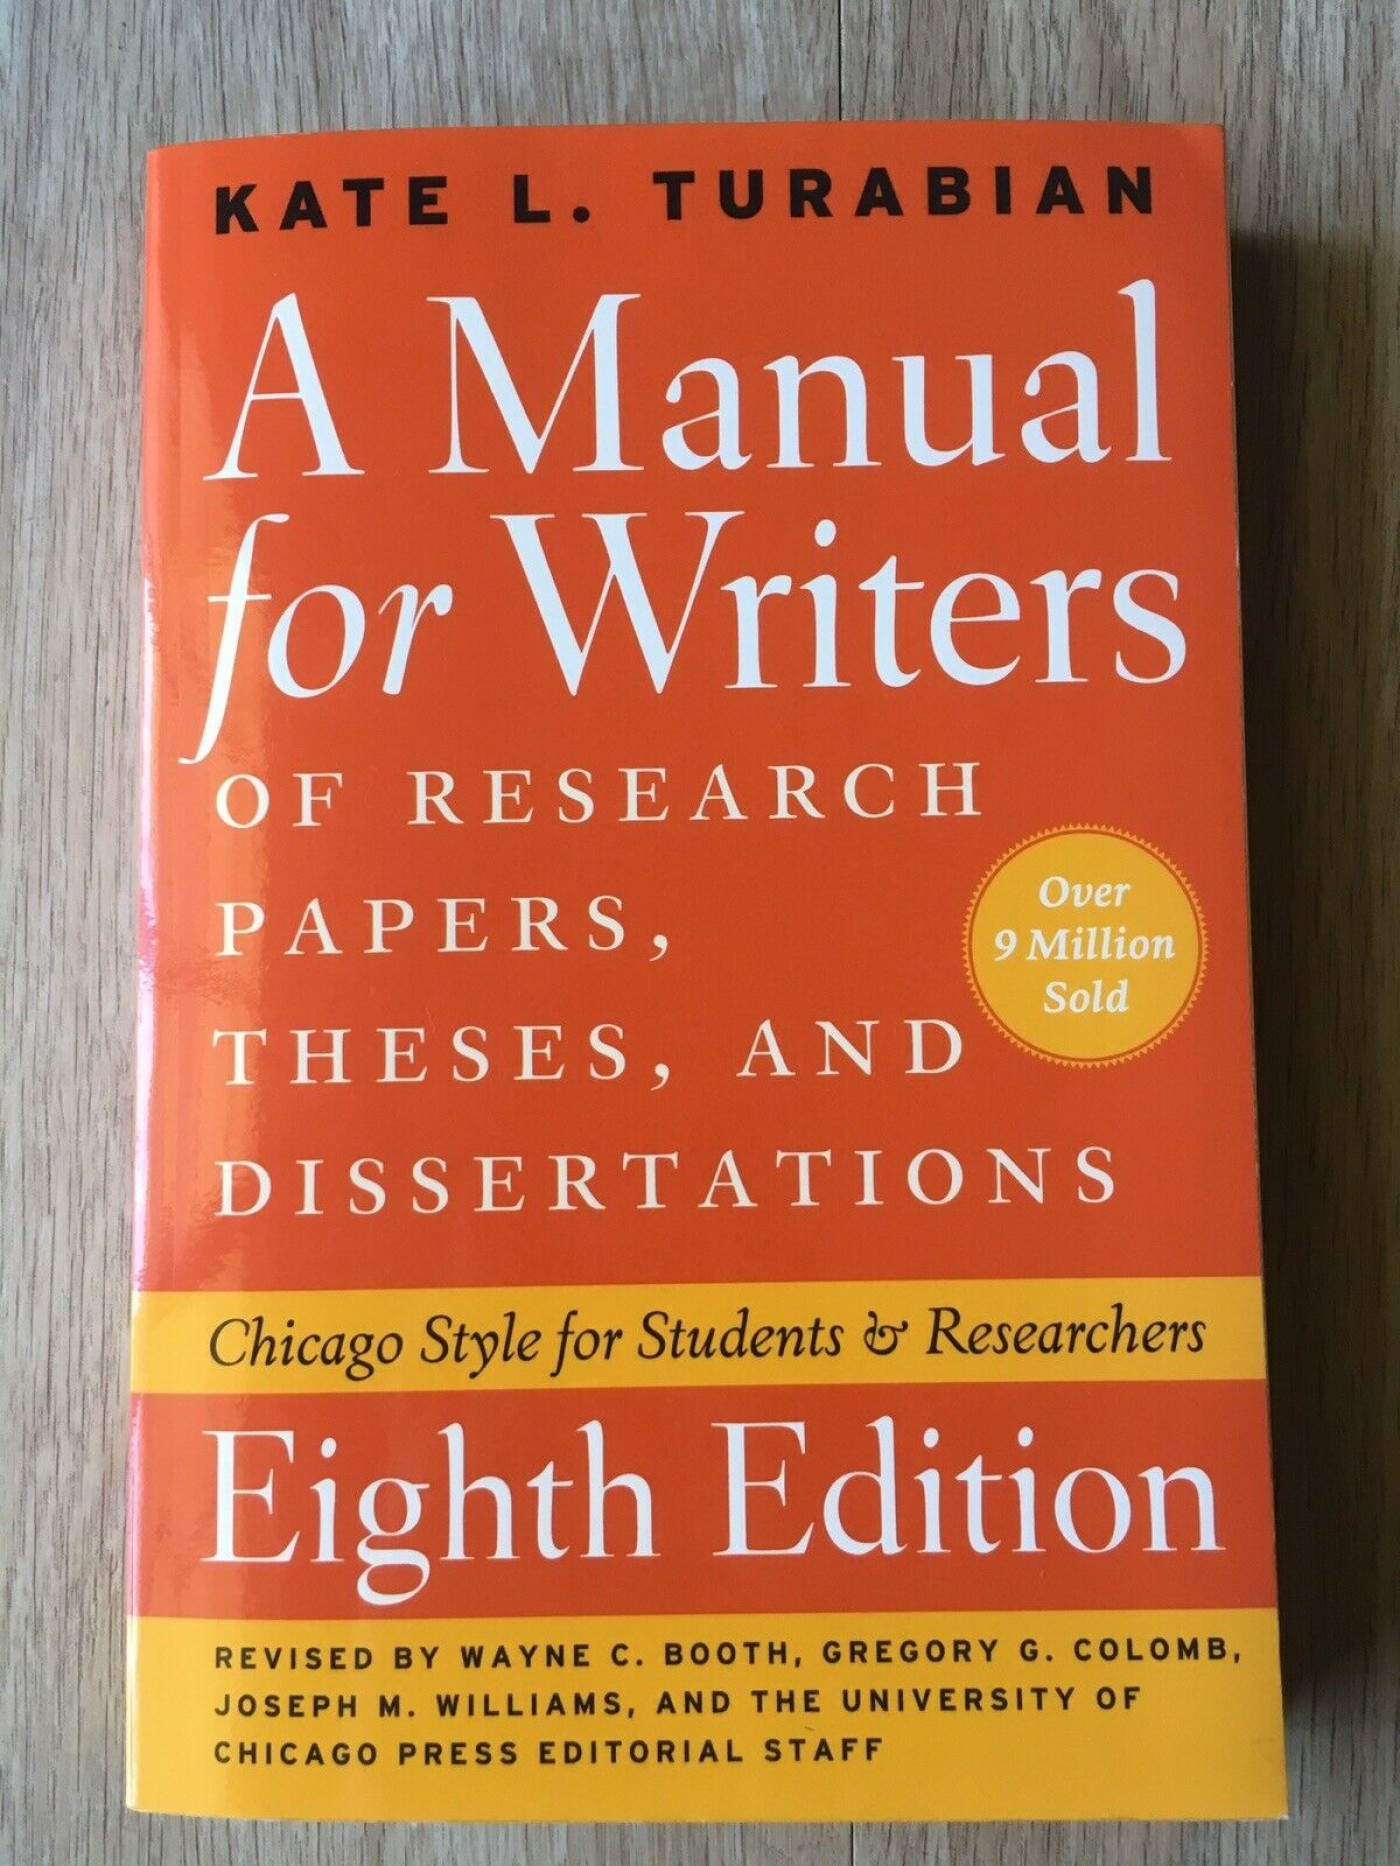 013 Manual For Writers Of Research Papers Theses And Dissertations Turabian Paper S Amazing A Pdf 1400